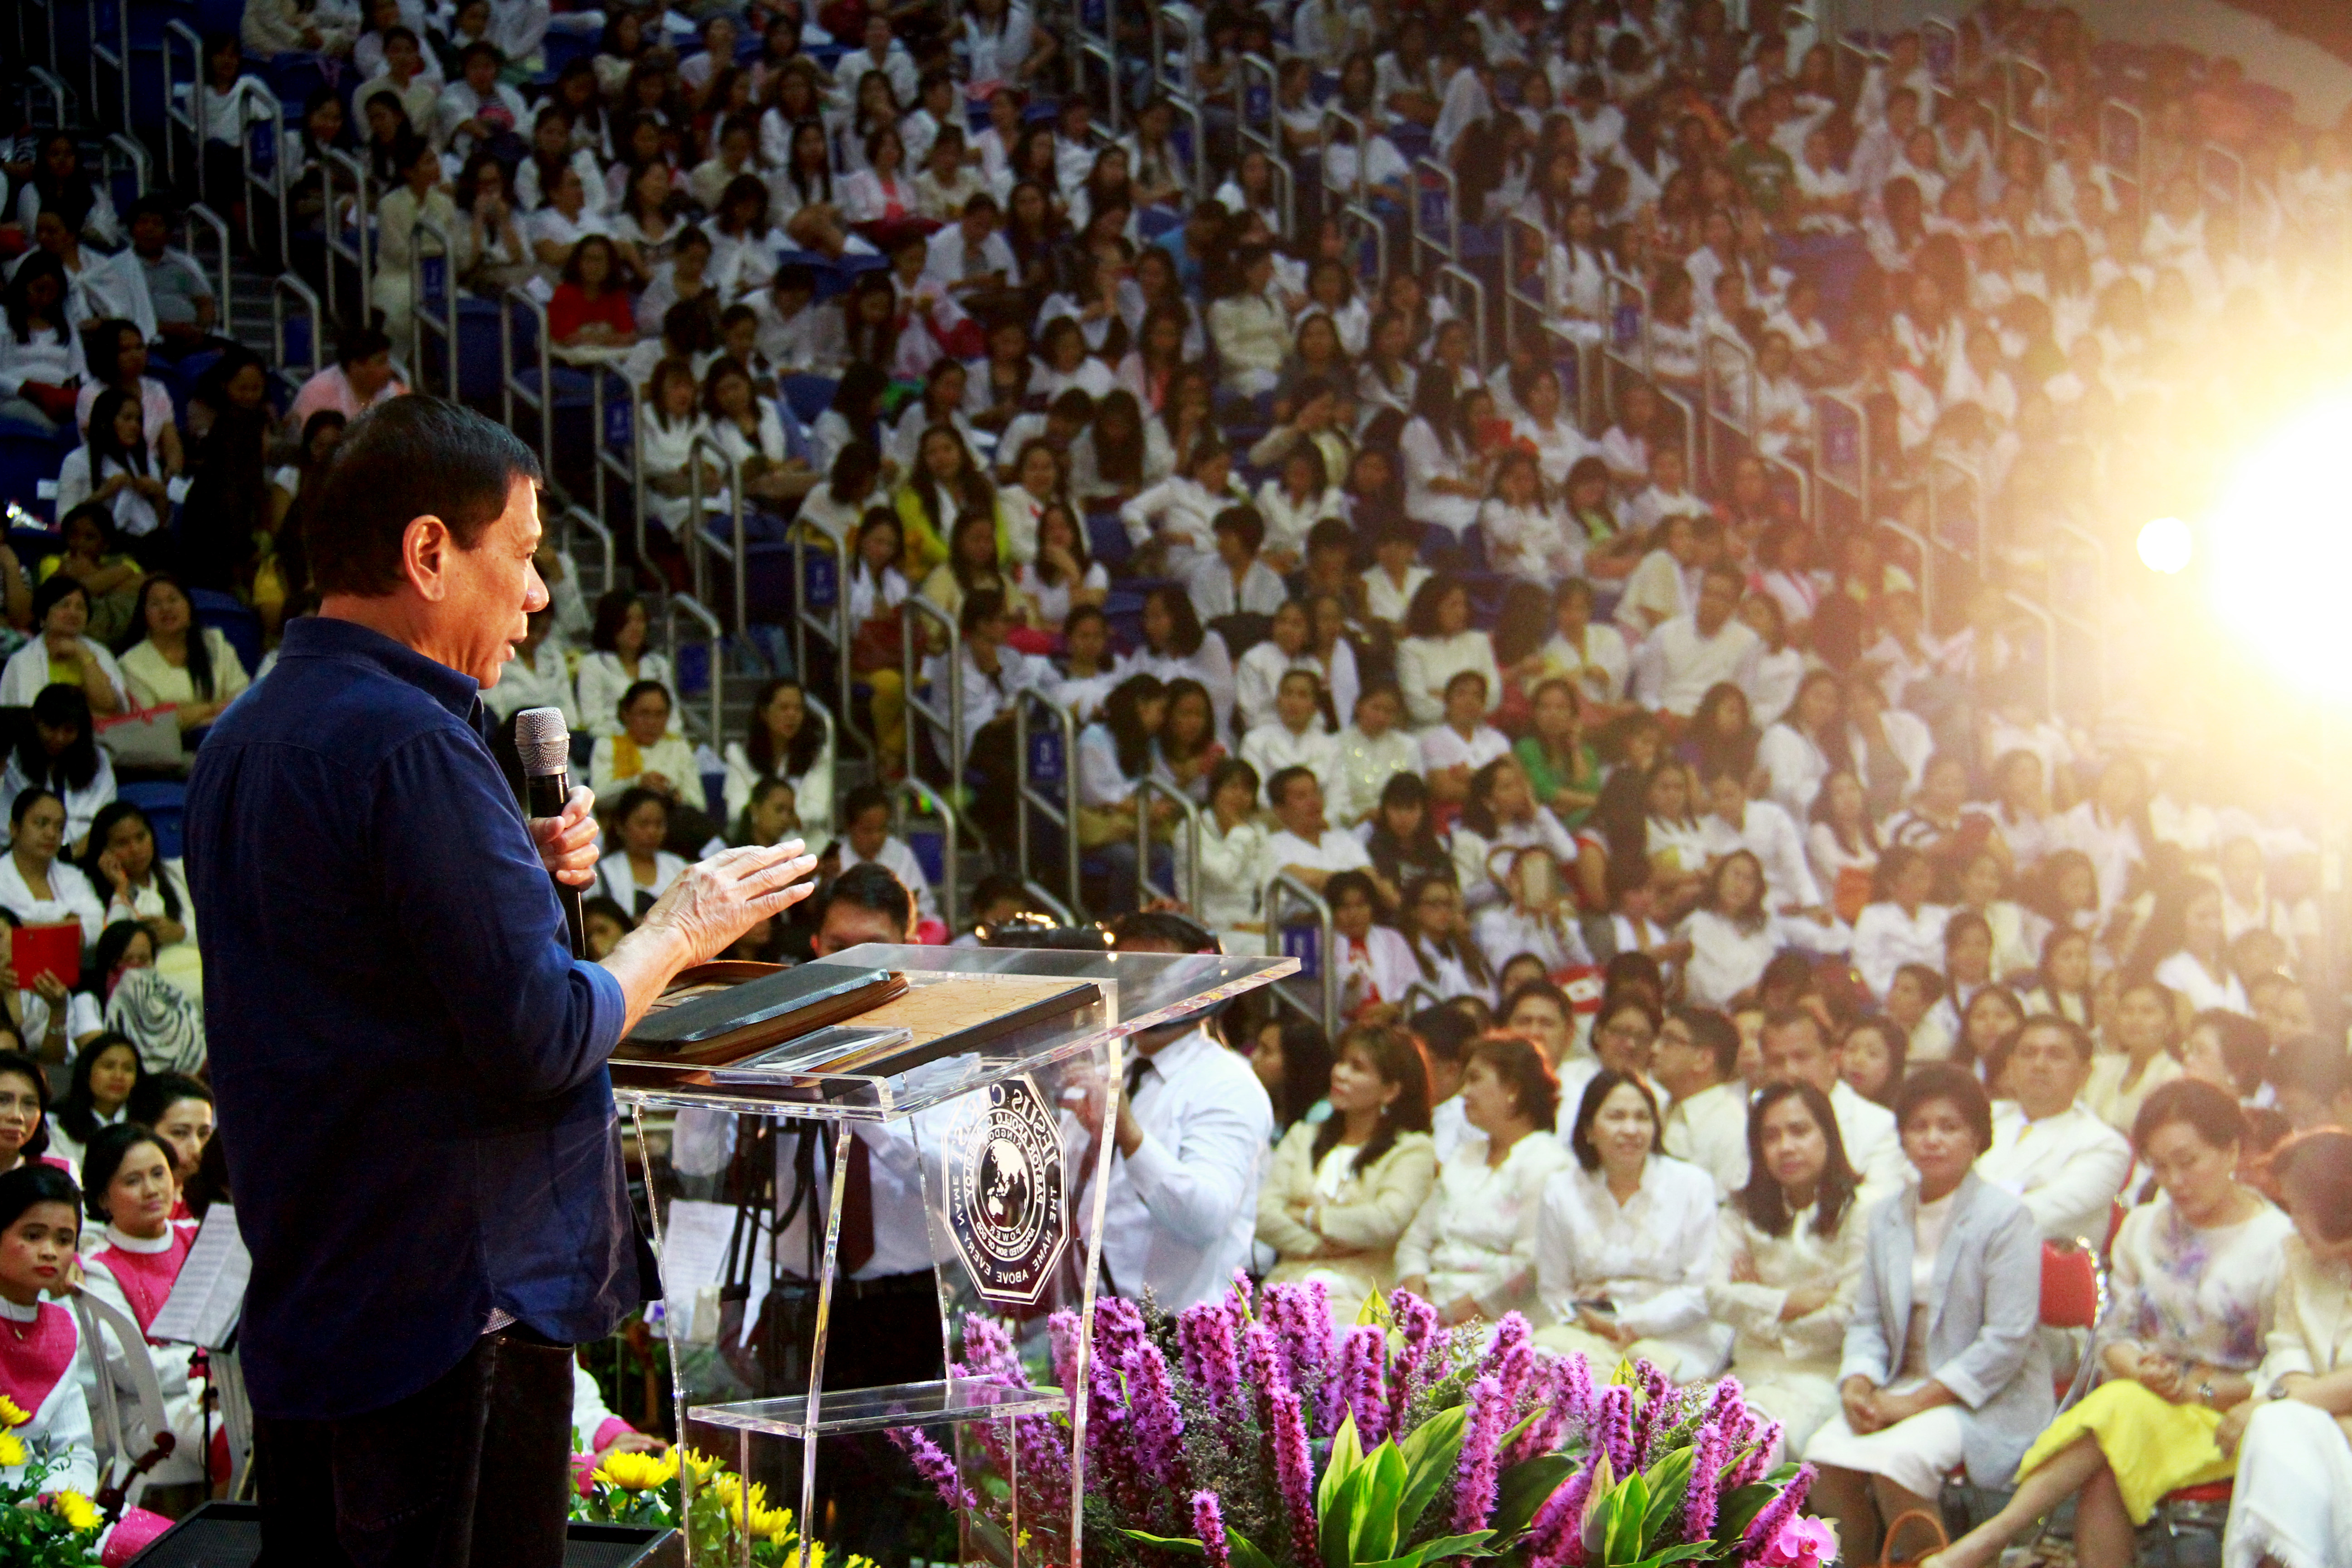 DUTERTE IN HK. Overseas Filipino workers in Hong Kong remain hopeful Duterte will make up his mind to run for president. Sonshine photo